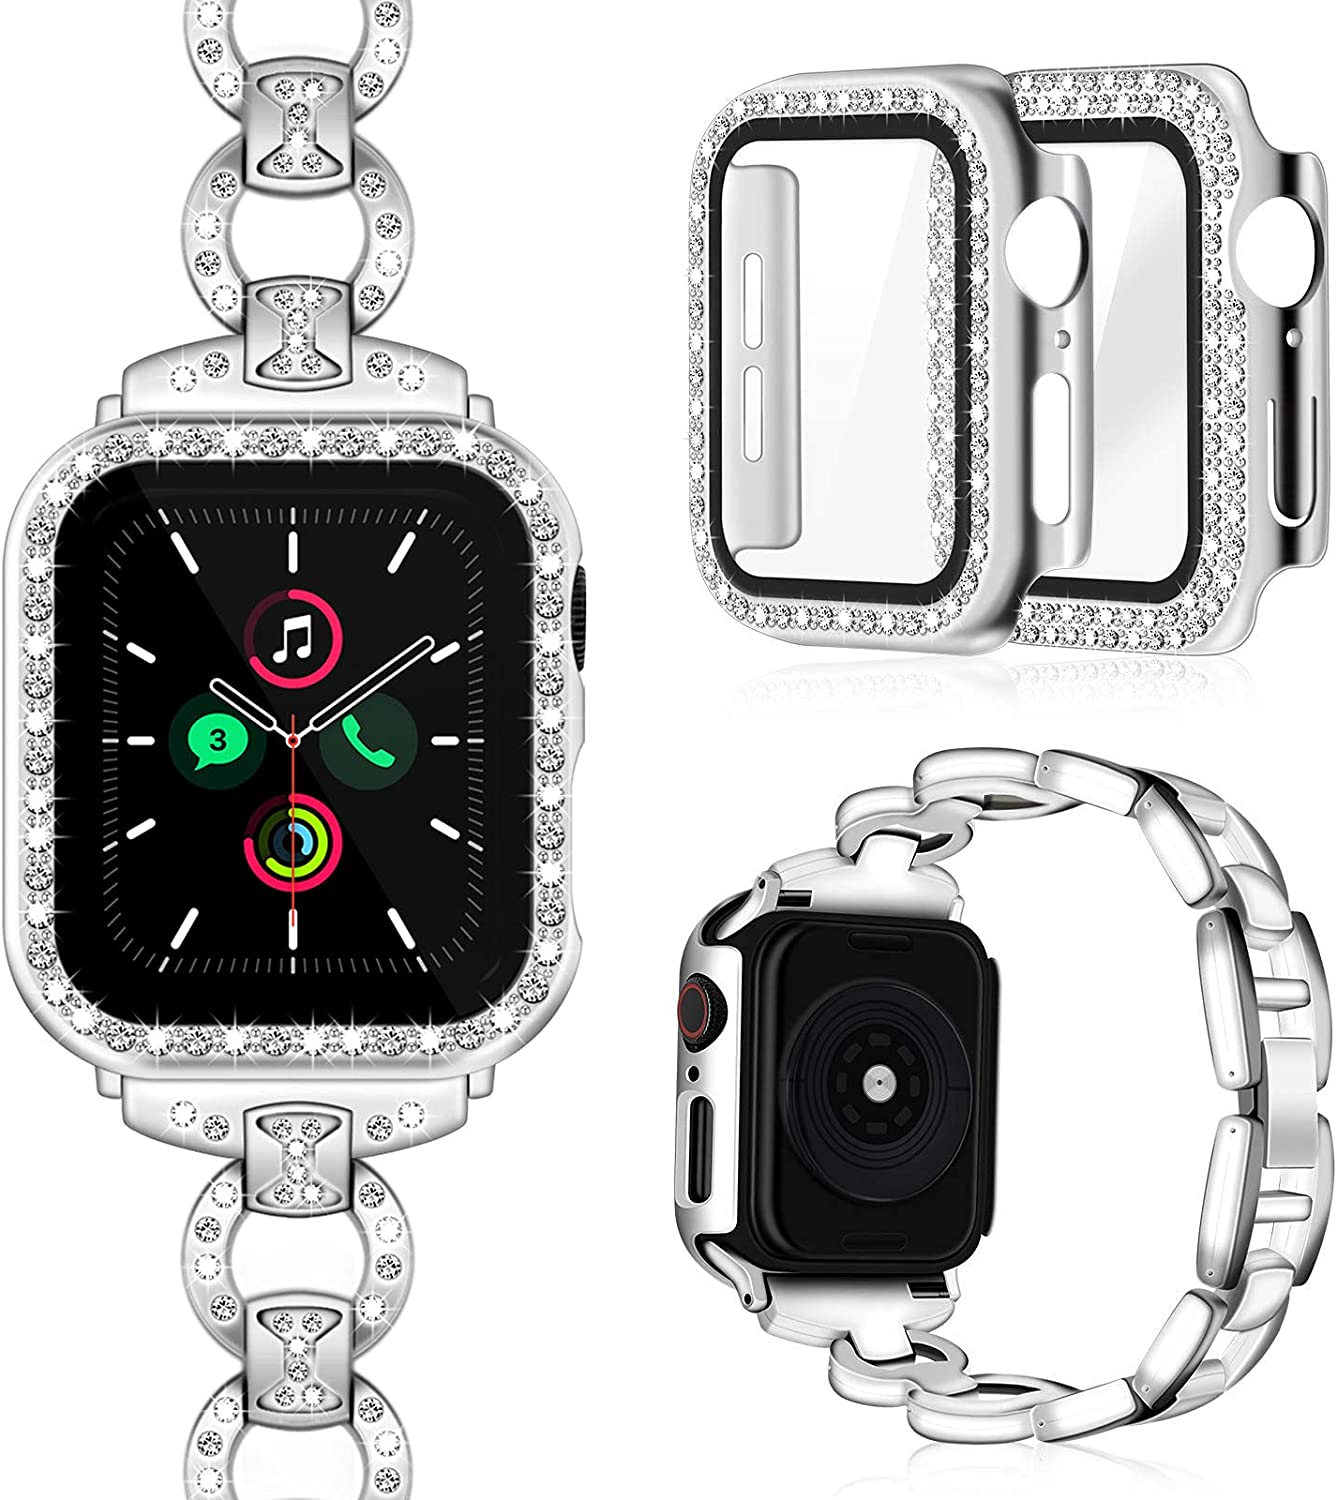 Invoibler Compatible with Apple Watch Band 40mm 44mm with Rhinestone Protective Cover, Women Girls Jewelry Replacement Metal Wristband Strap with 2PCS Bling Diamond PC Protective Case for iWatch Series 6/5/4 (Silver)